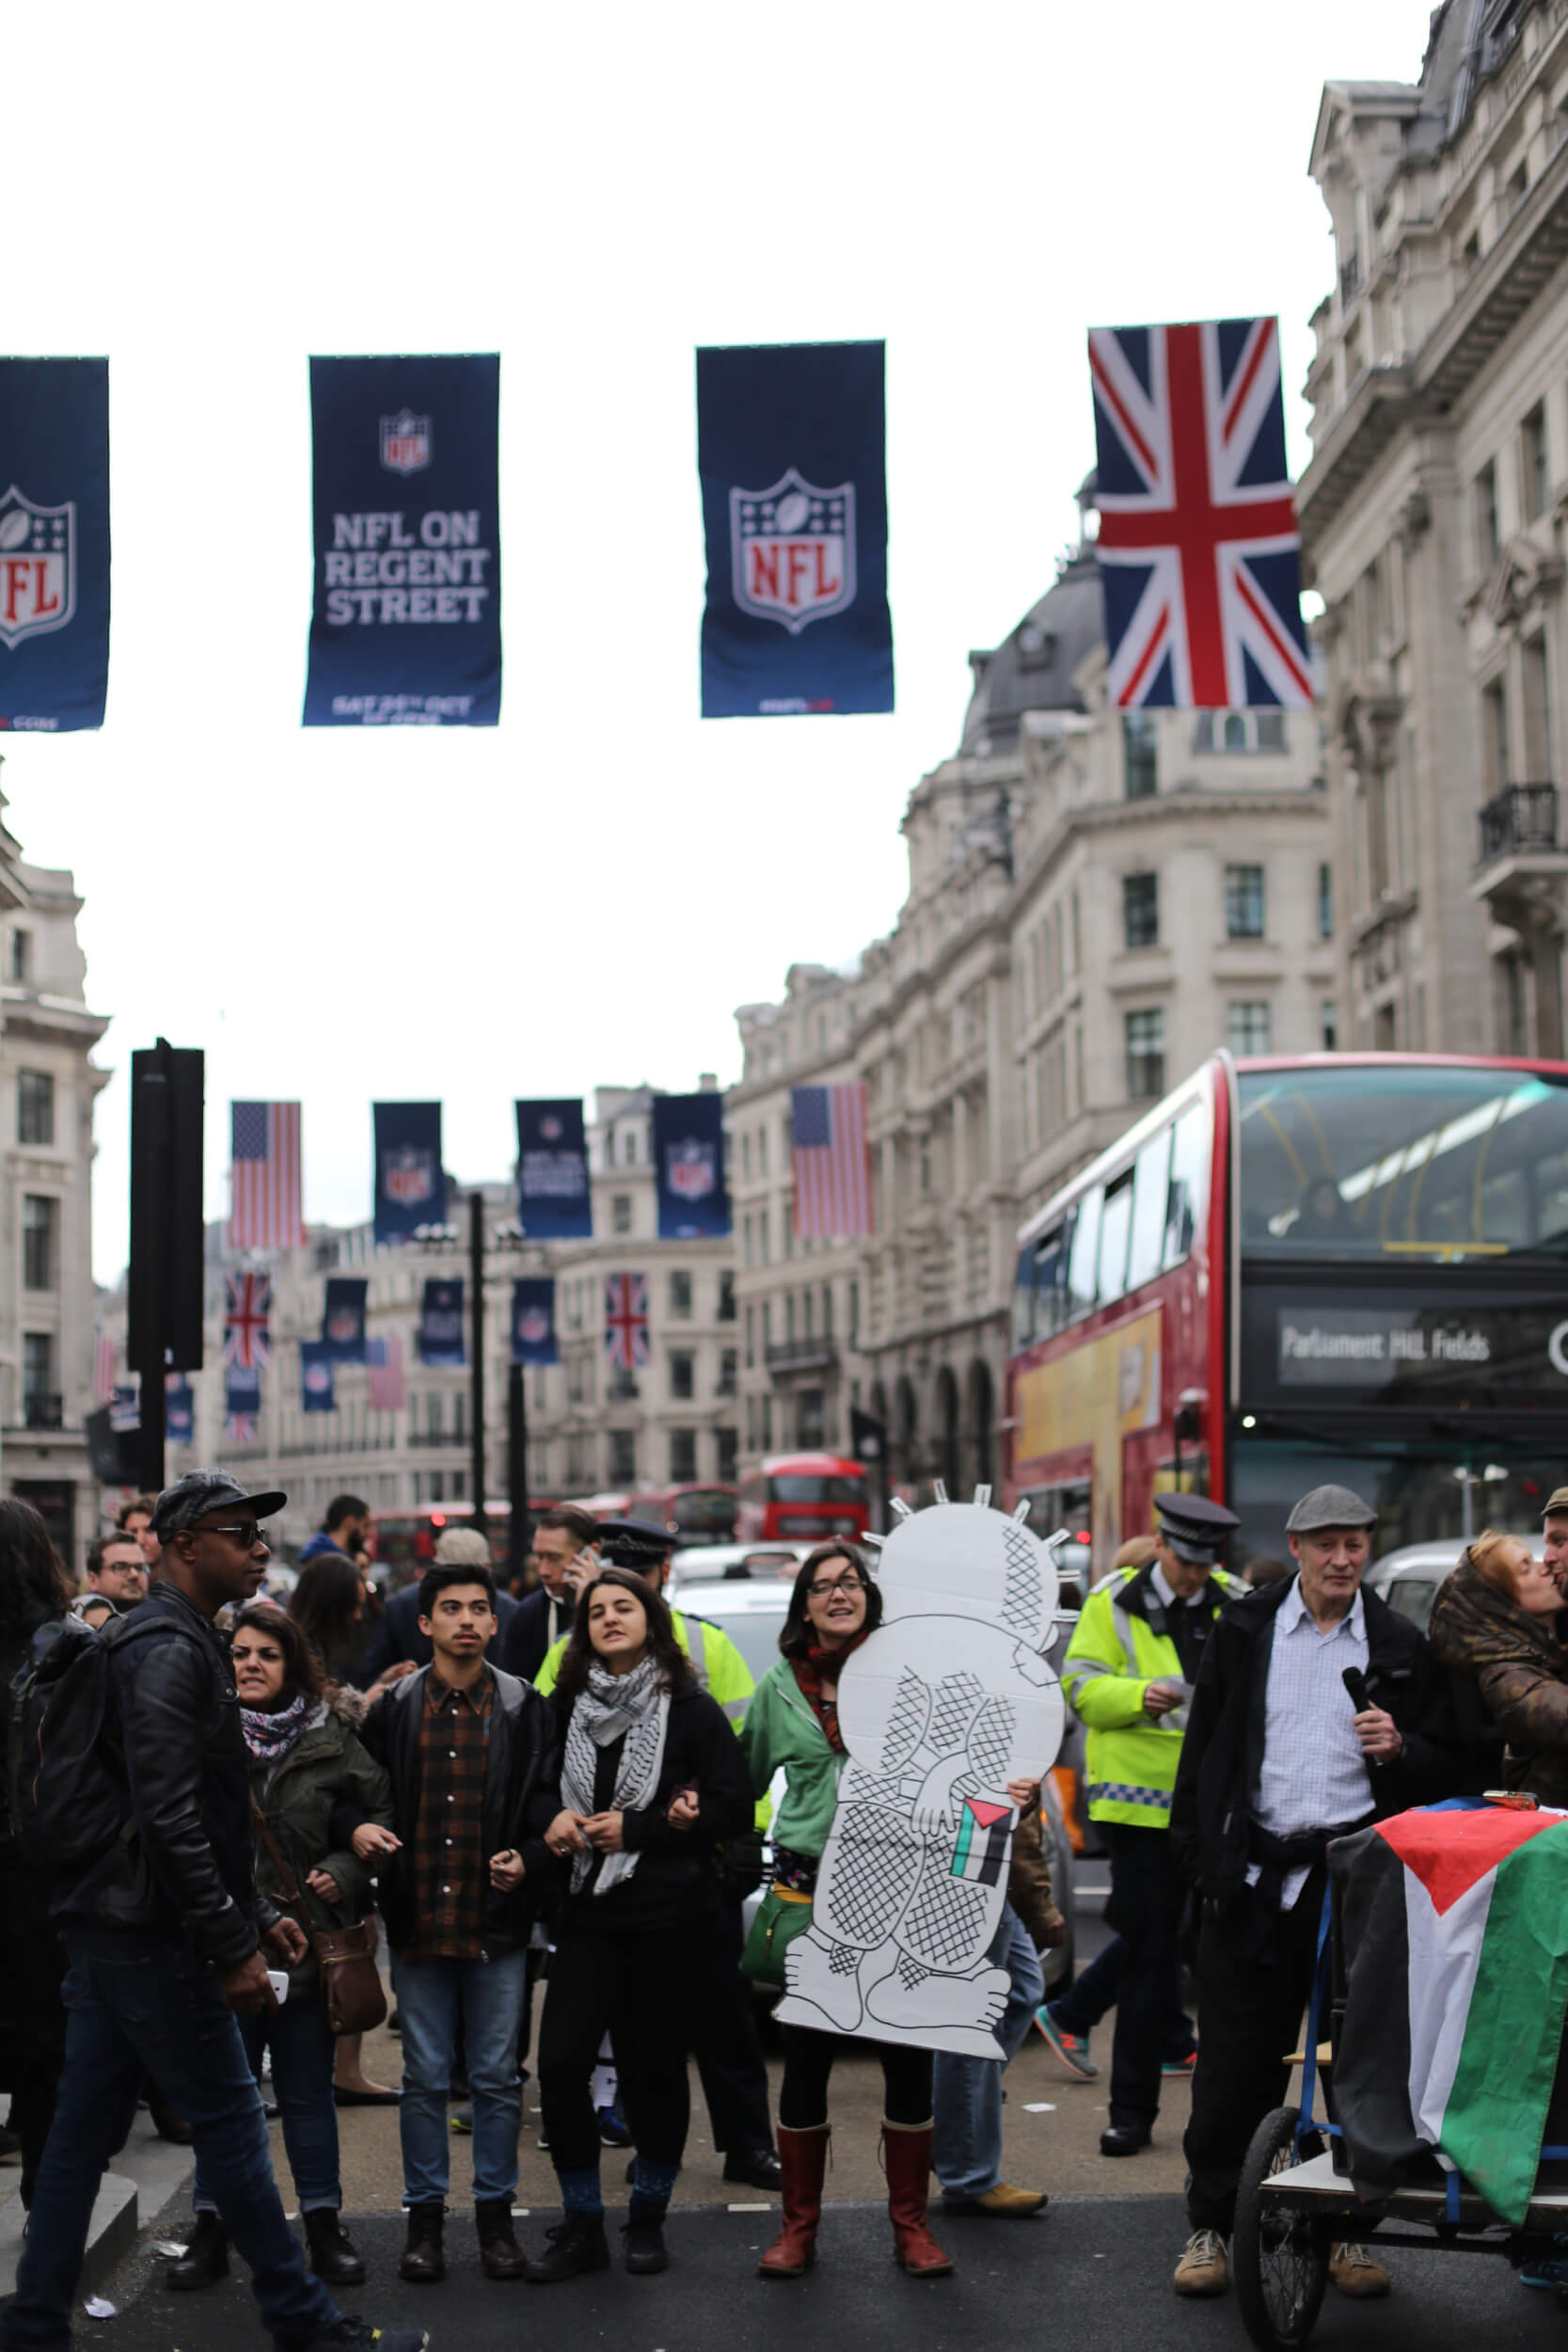 Protesters link arms stopping traffic on Oxford Street. Some hold representations of Handala, a creation of the late Palestinian cartoonist Nagi Al-Ali. Handala bears witness to the Israeli oppression of the Palestinian people. (Photo: Sara Anna)